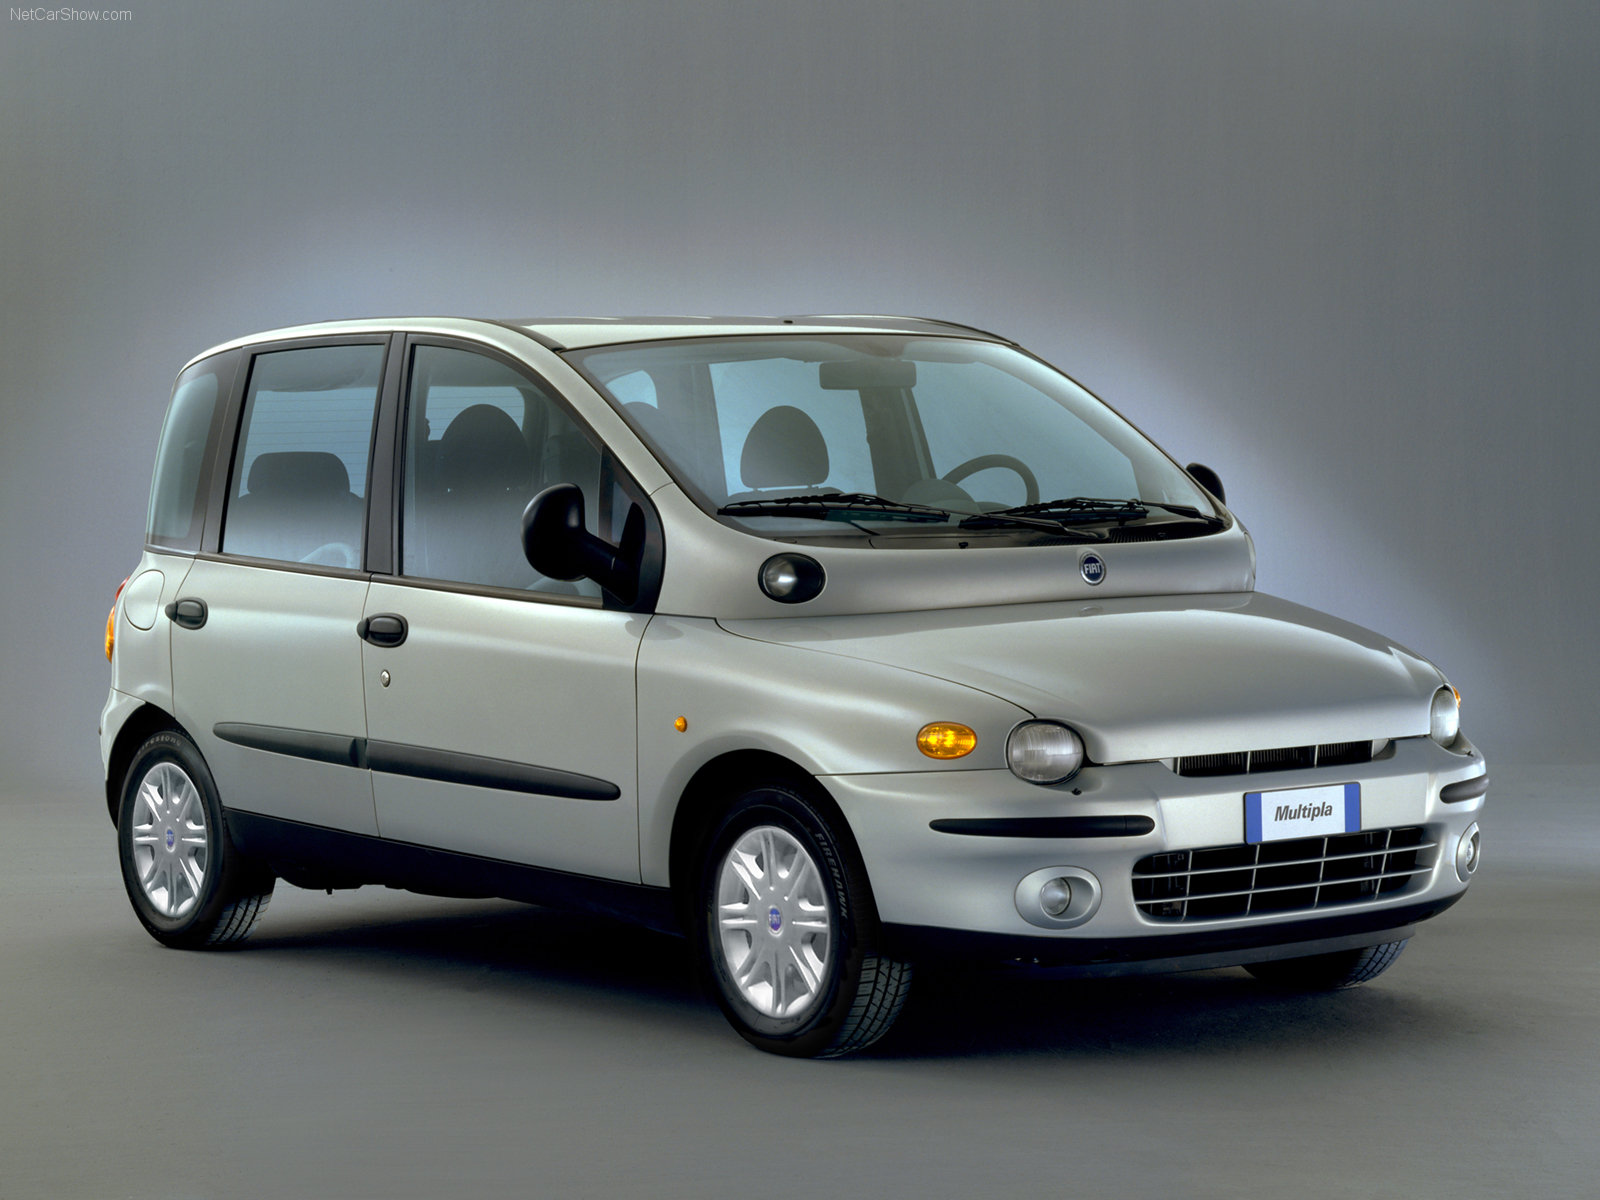 Fiat Multipla photo 35079